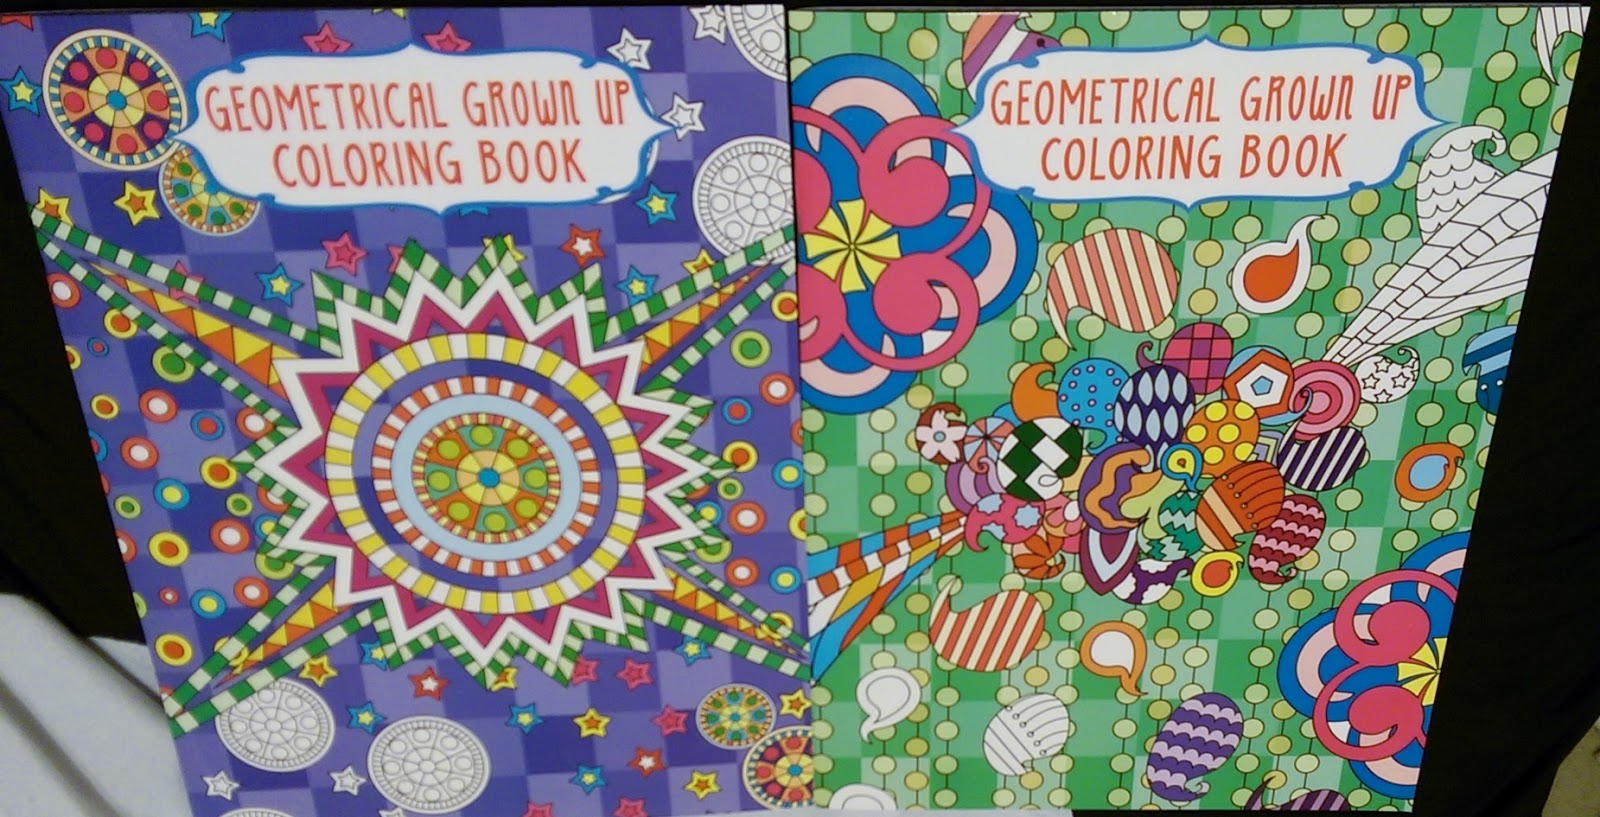 dollar tree geometric grown up coloring books for adults calming pastime activity hobby trend - Dollar Tree Coloring Books